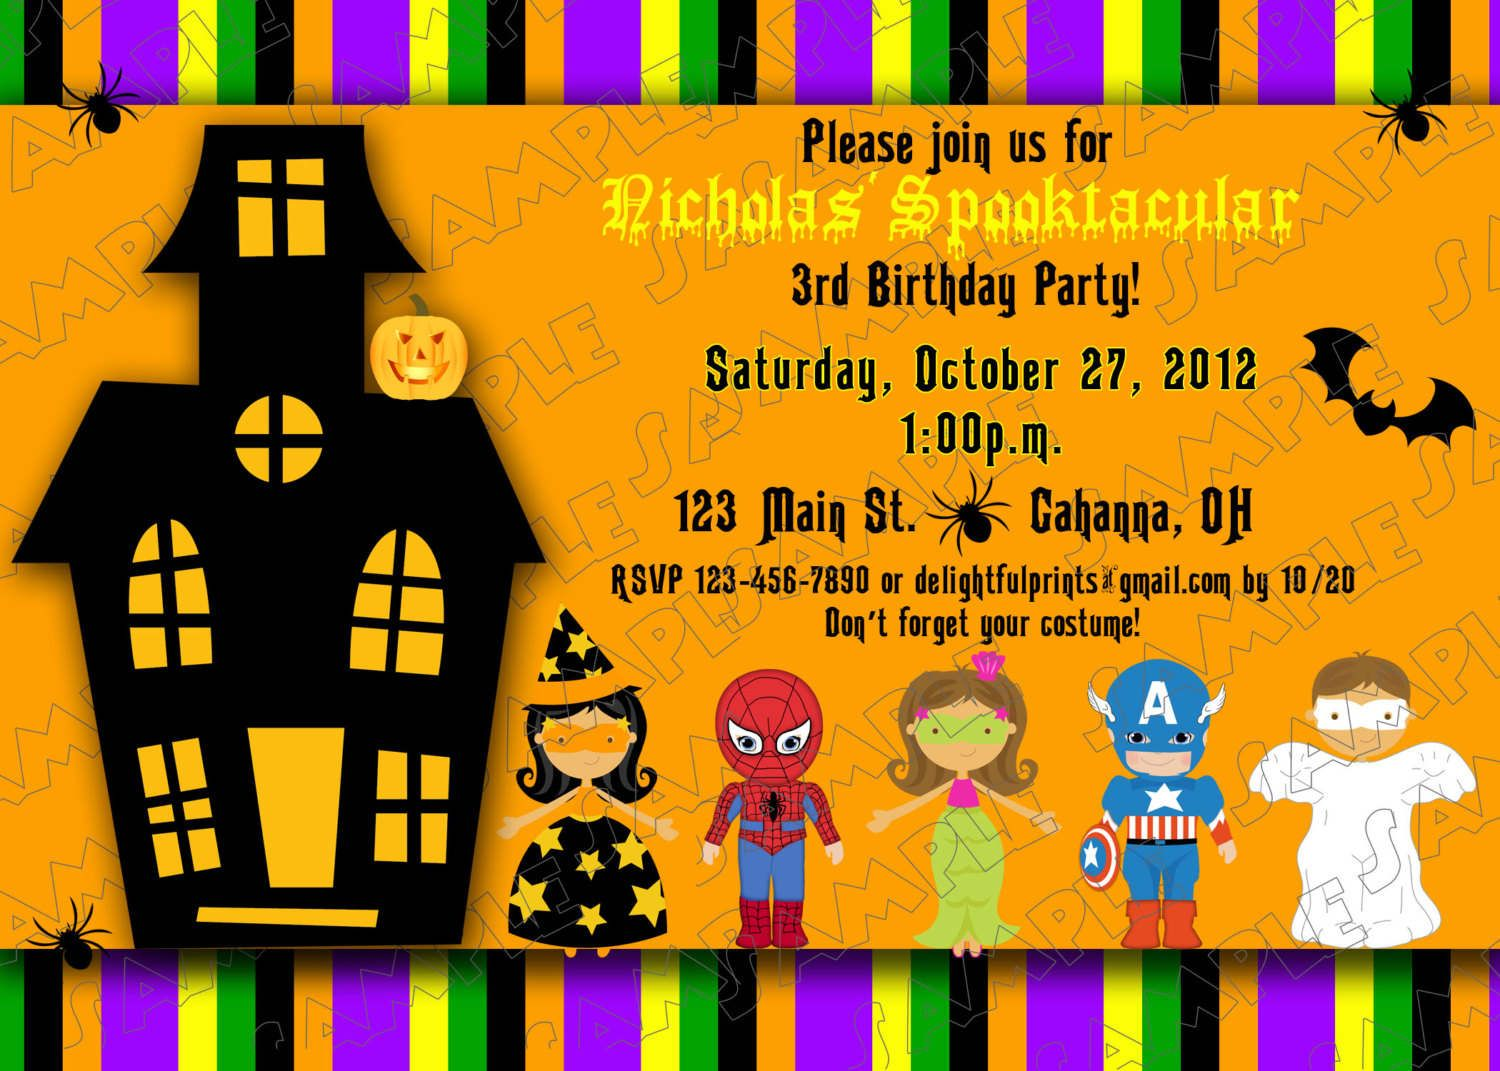 Halloween Kids Birthday Party Invitations Printable Hallowe Kids Halloween Party Invitations Halloween Birthday Party Invitations Halloween Party Invitations